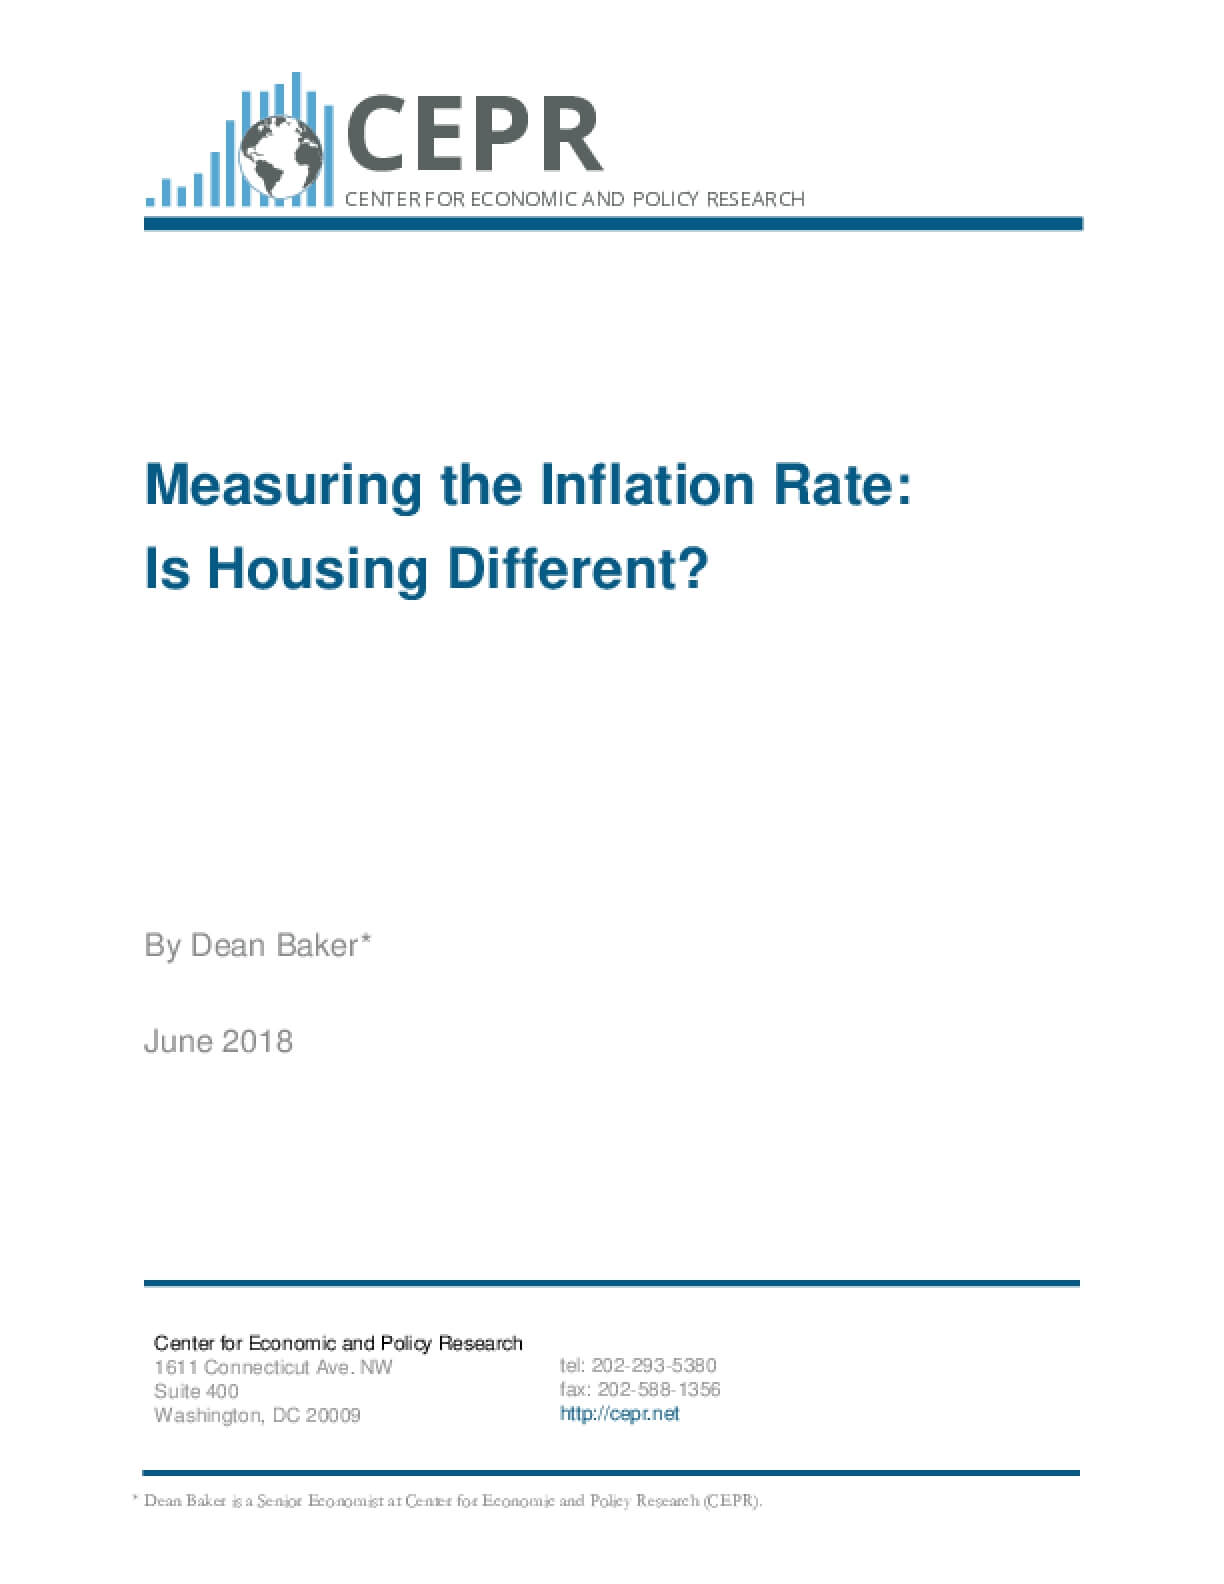 Measuring the Inflation Rate:  Is Housing Different?